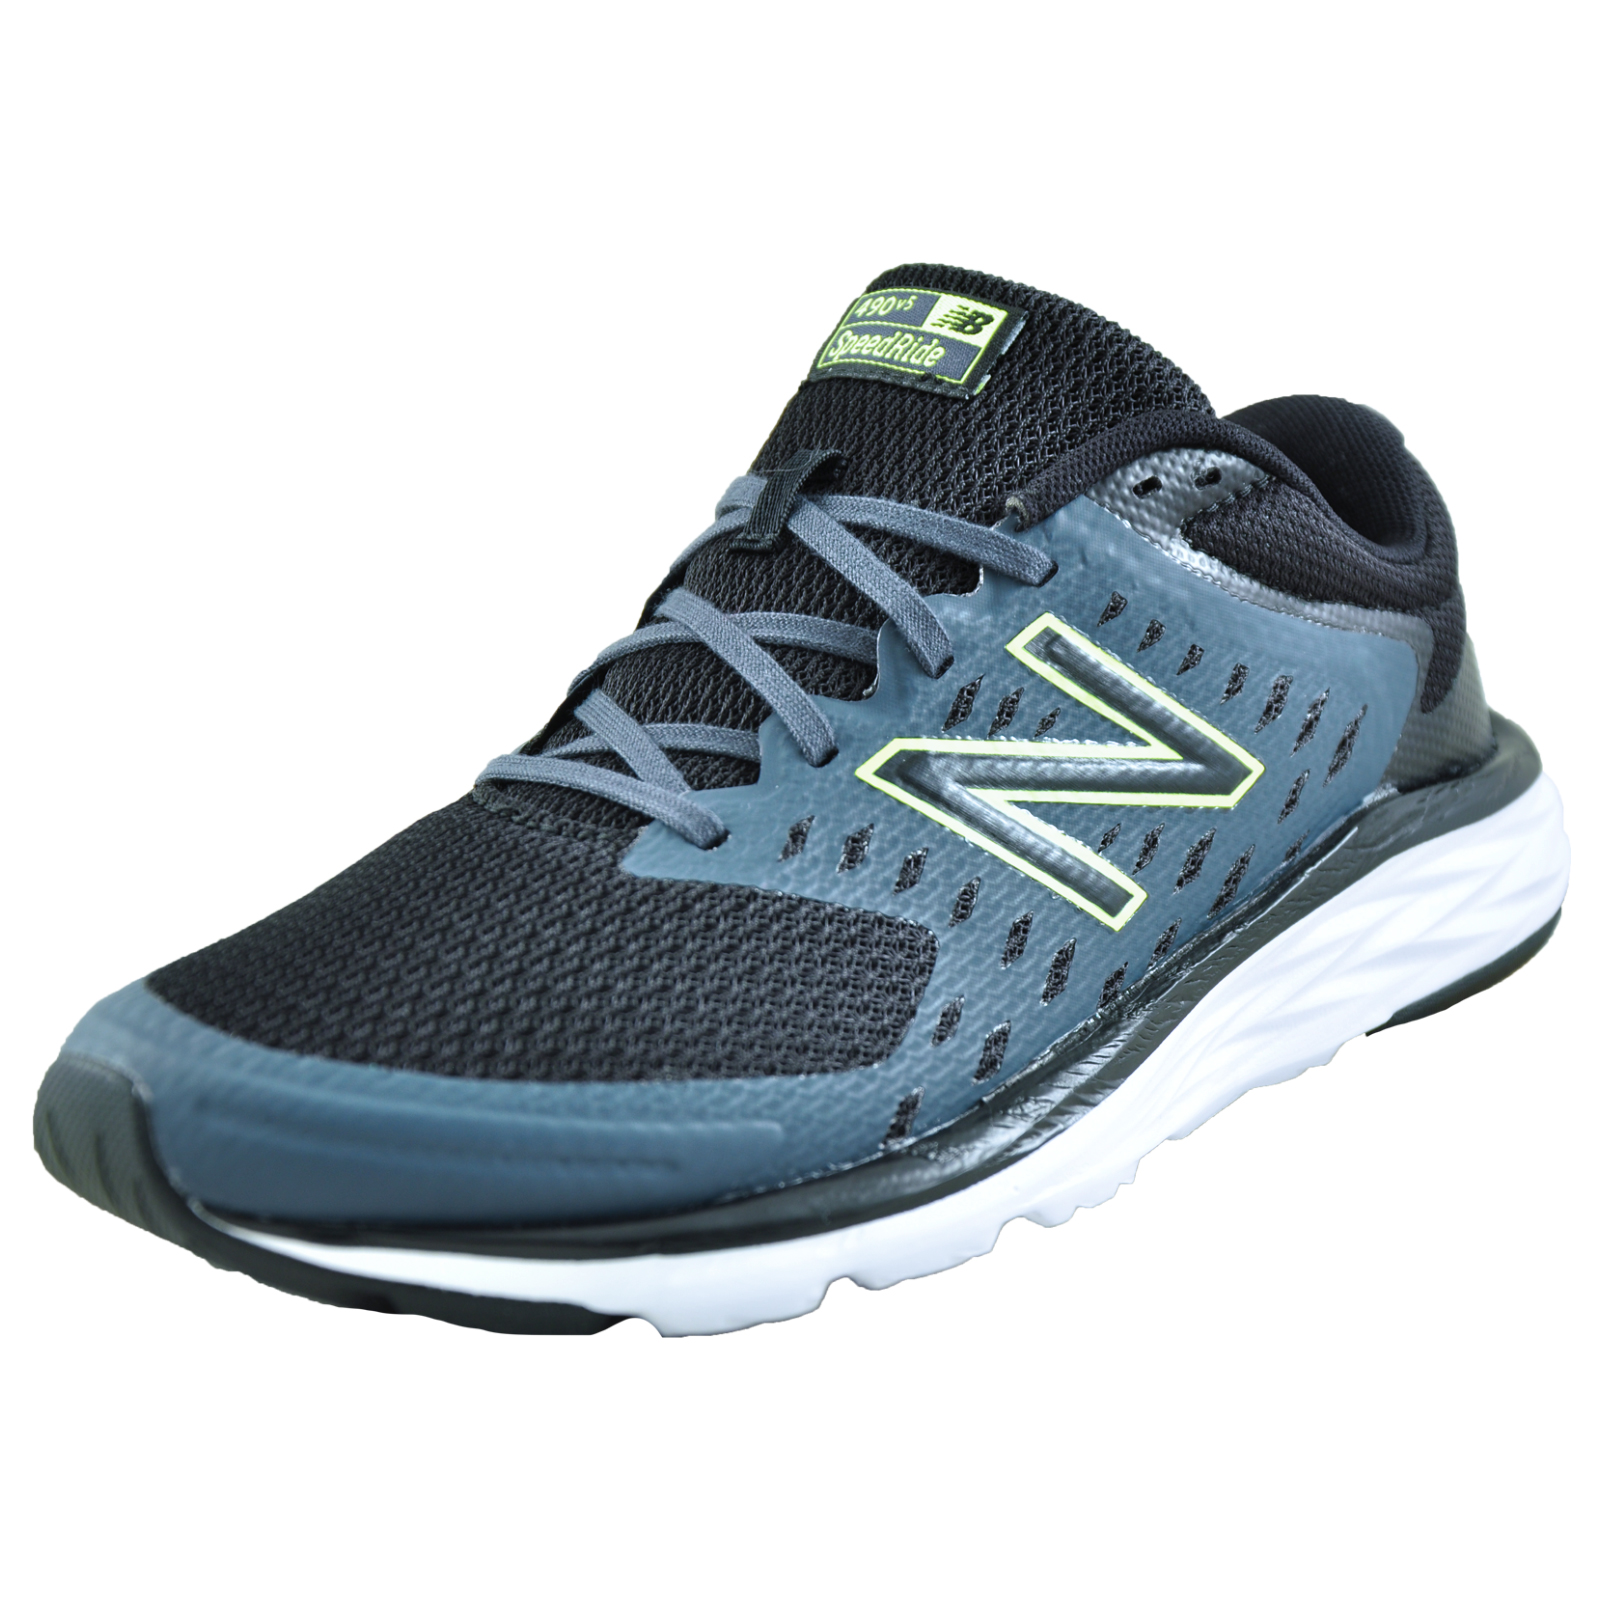 lowest price c72b7 a739d Details about New Balance 490v5 Men's Premium Running Shoes Fitness Gym  Trainers Black